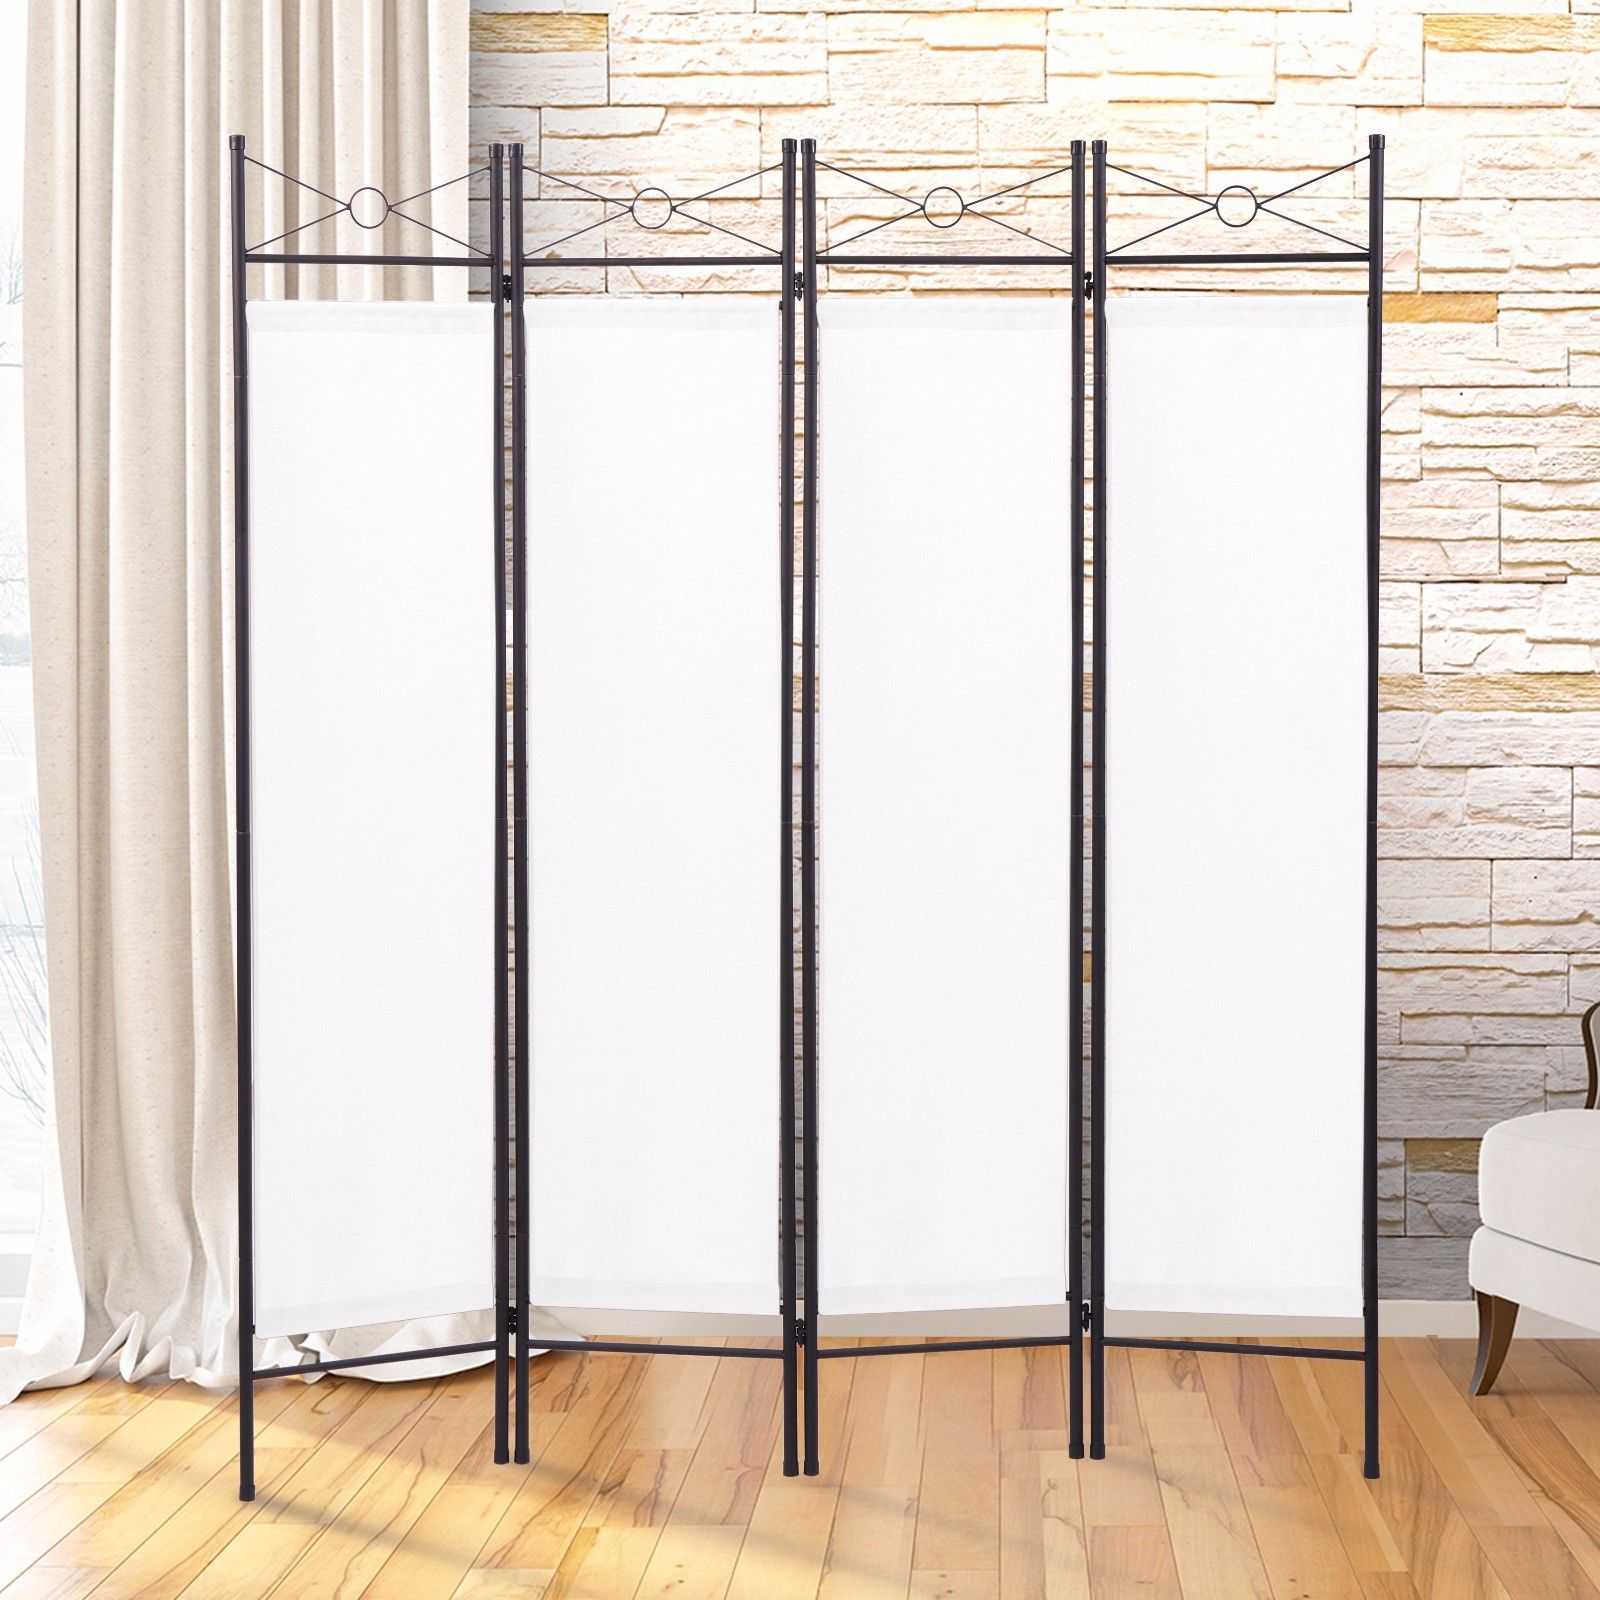 Folding Room Dividers Eames Molded Plywood Screen